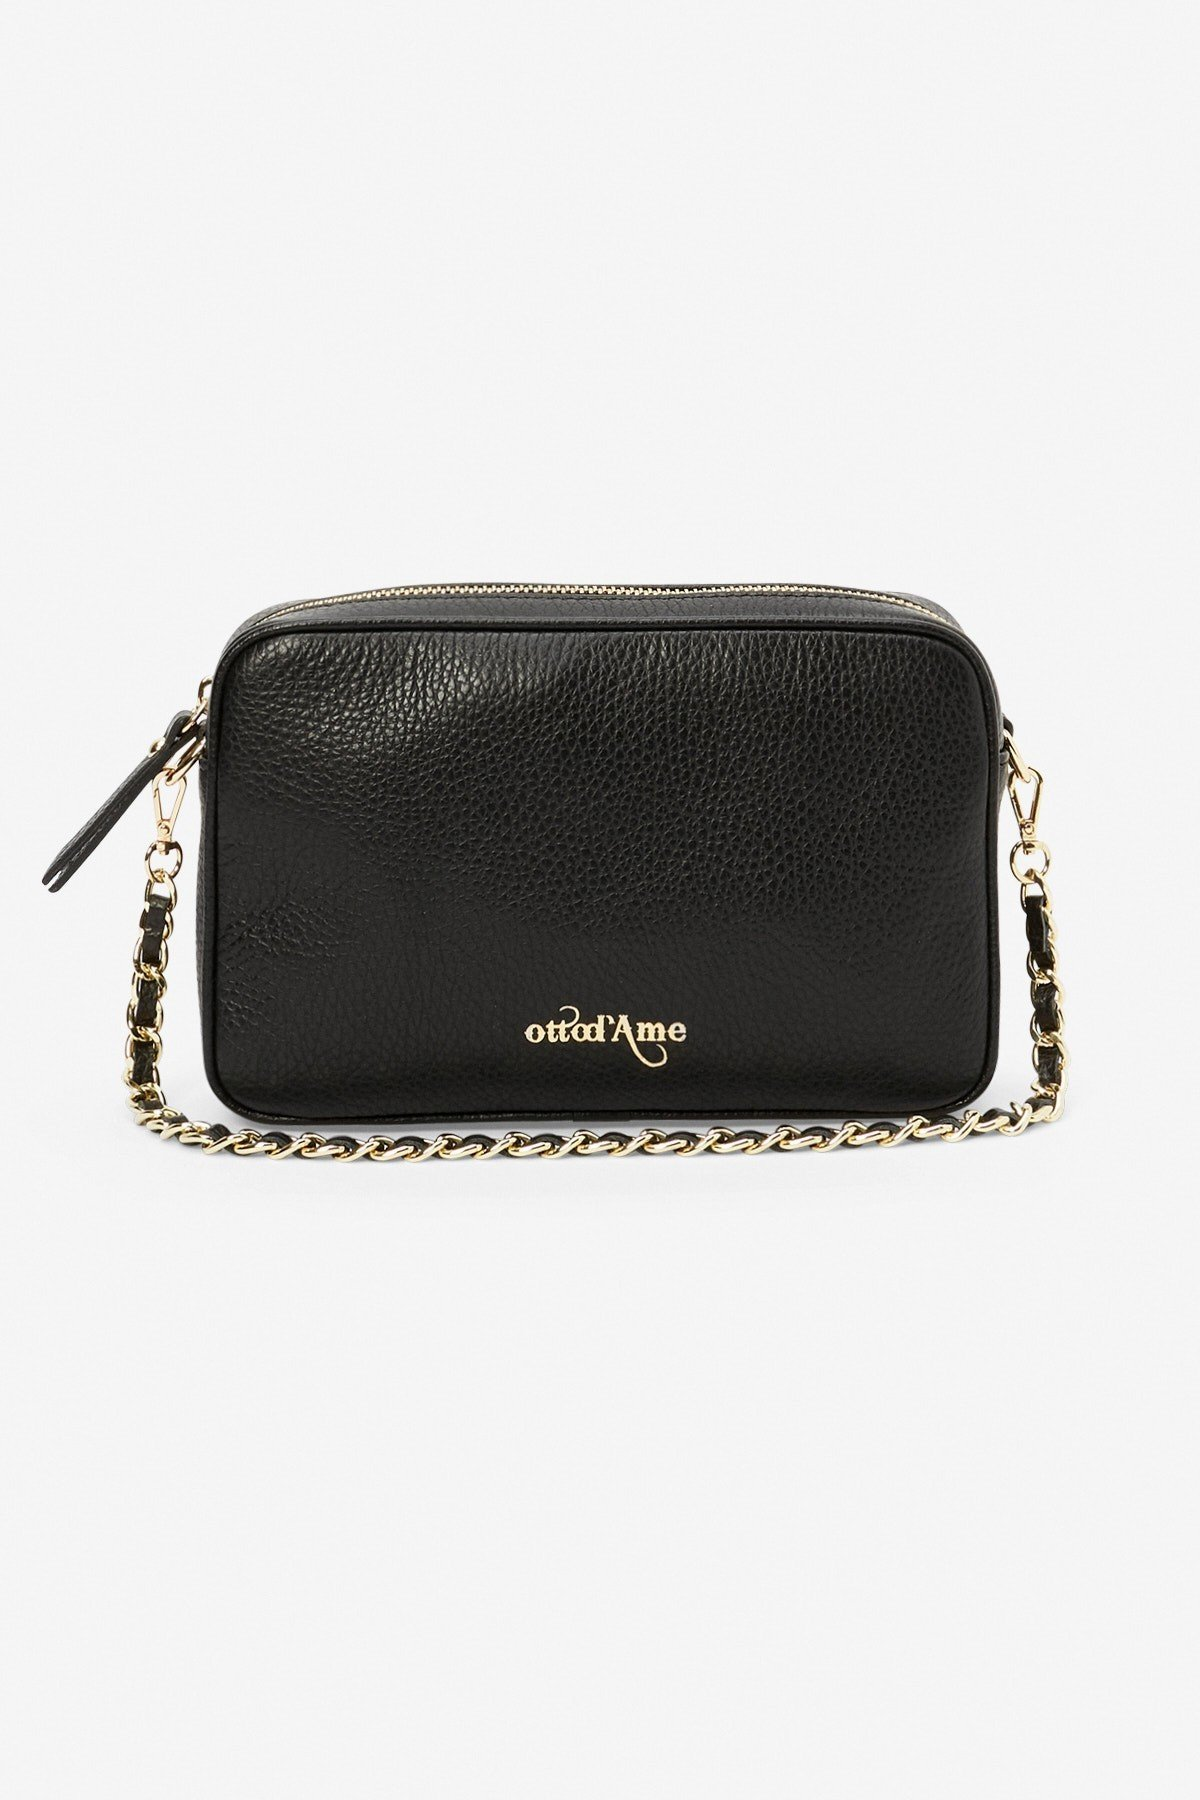 Small leather handbag with handle and strap